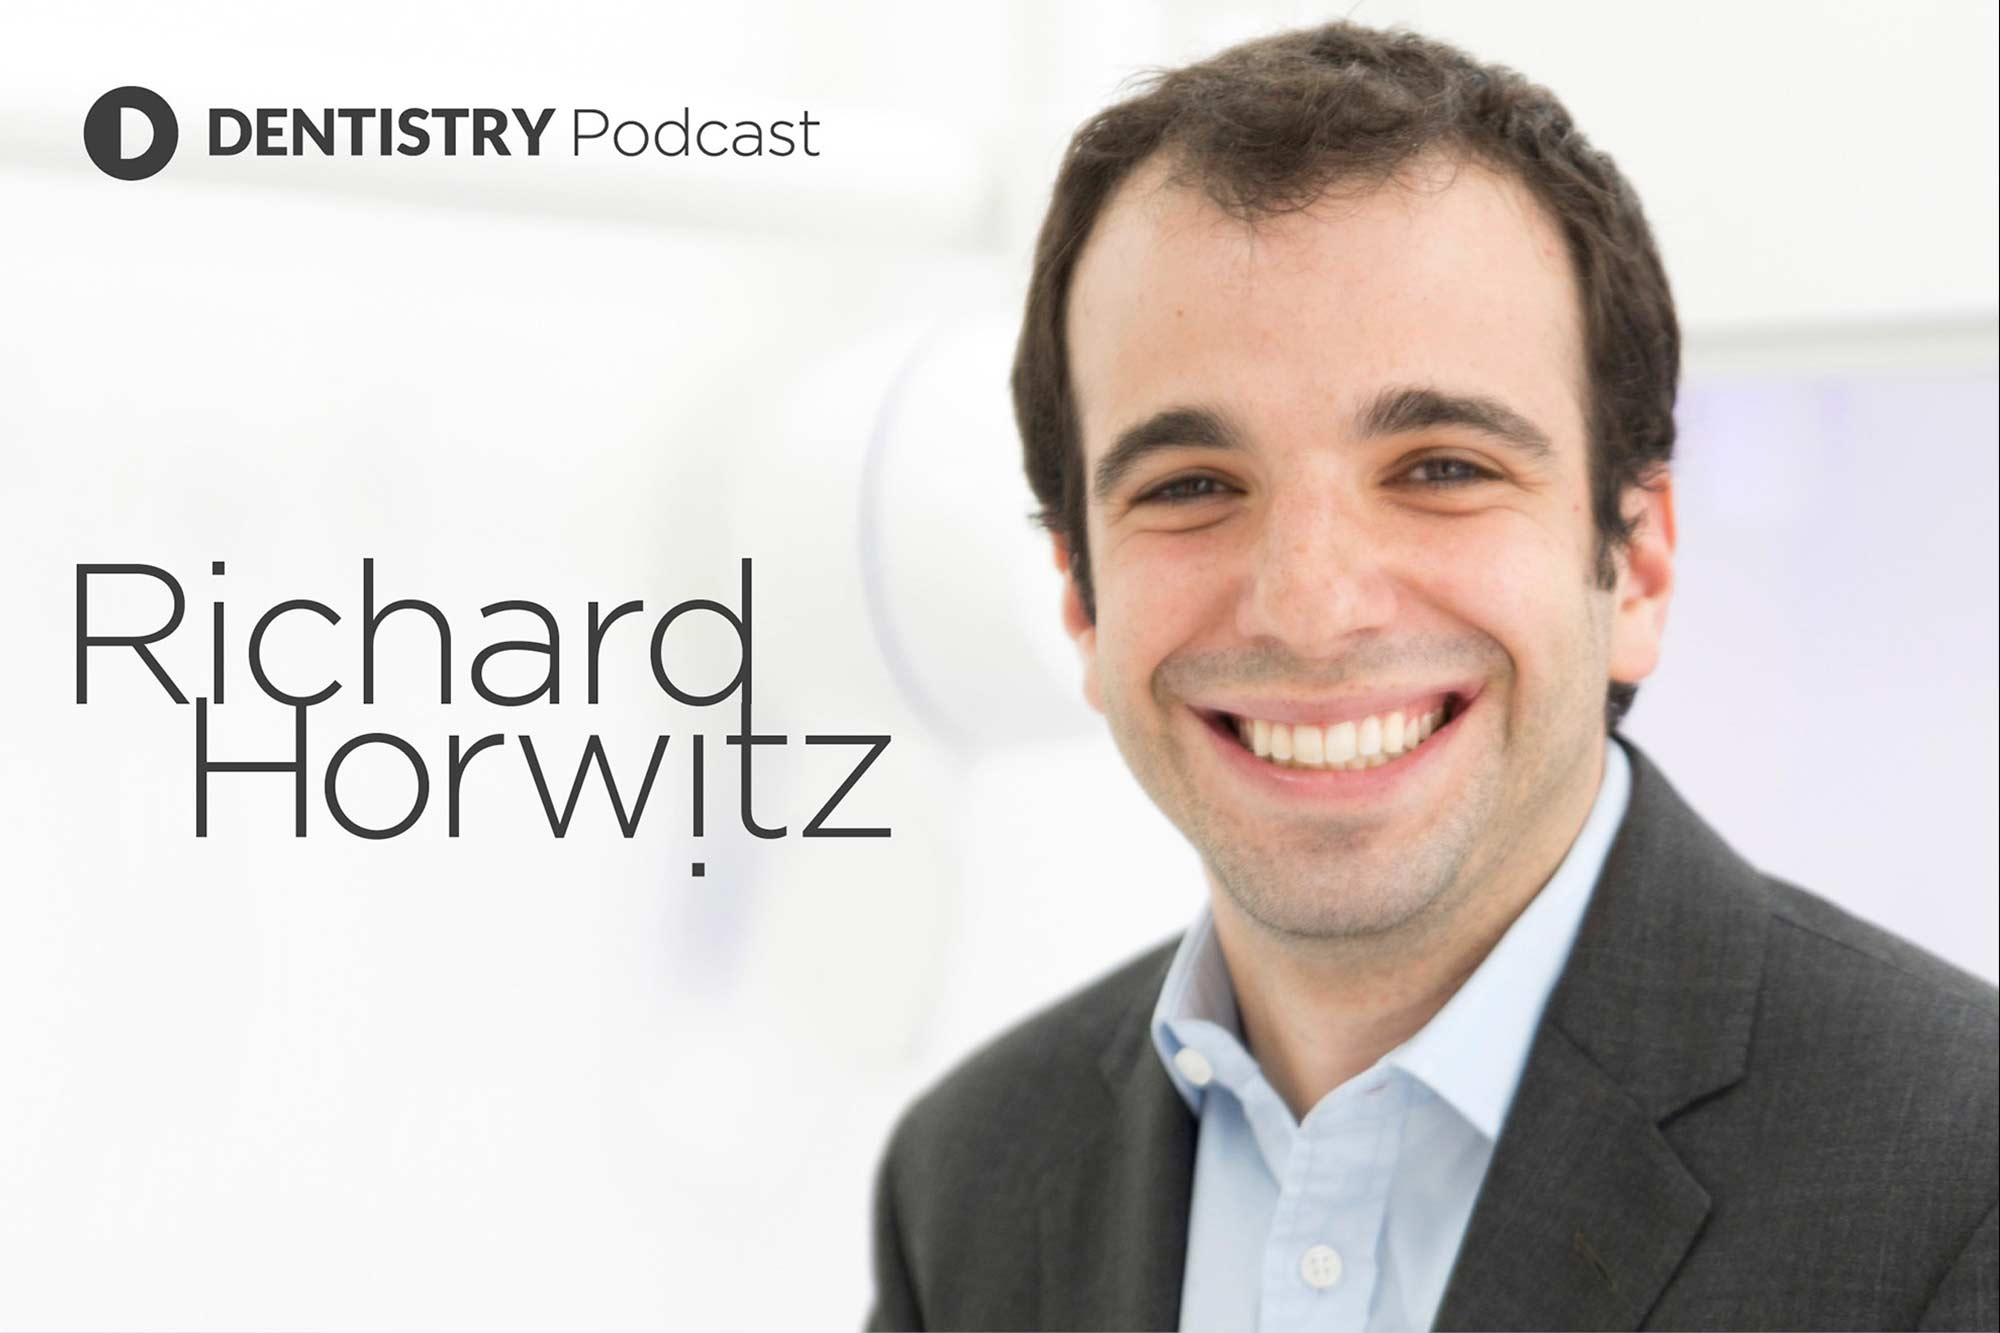 Dr Richard Horwitz discusses his journey into dentistry and his newly-found passion for baking bread